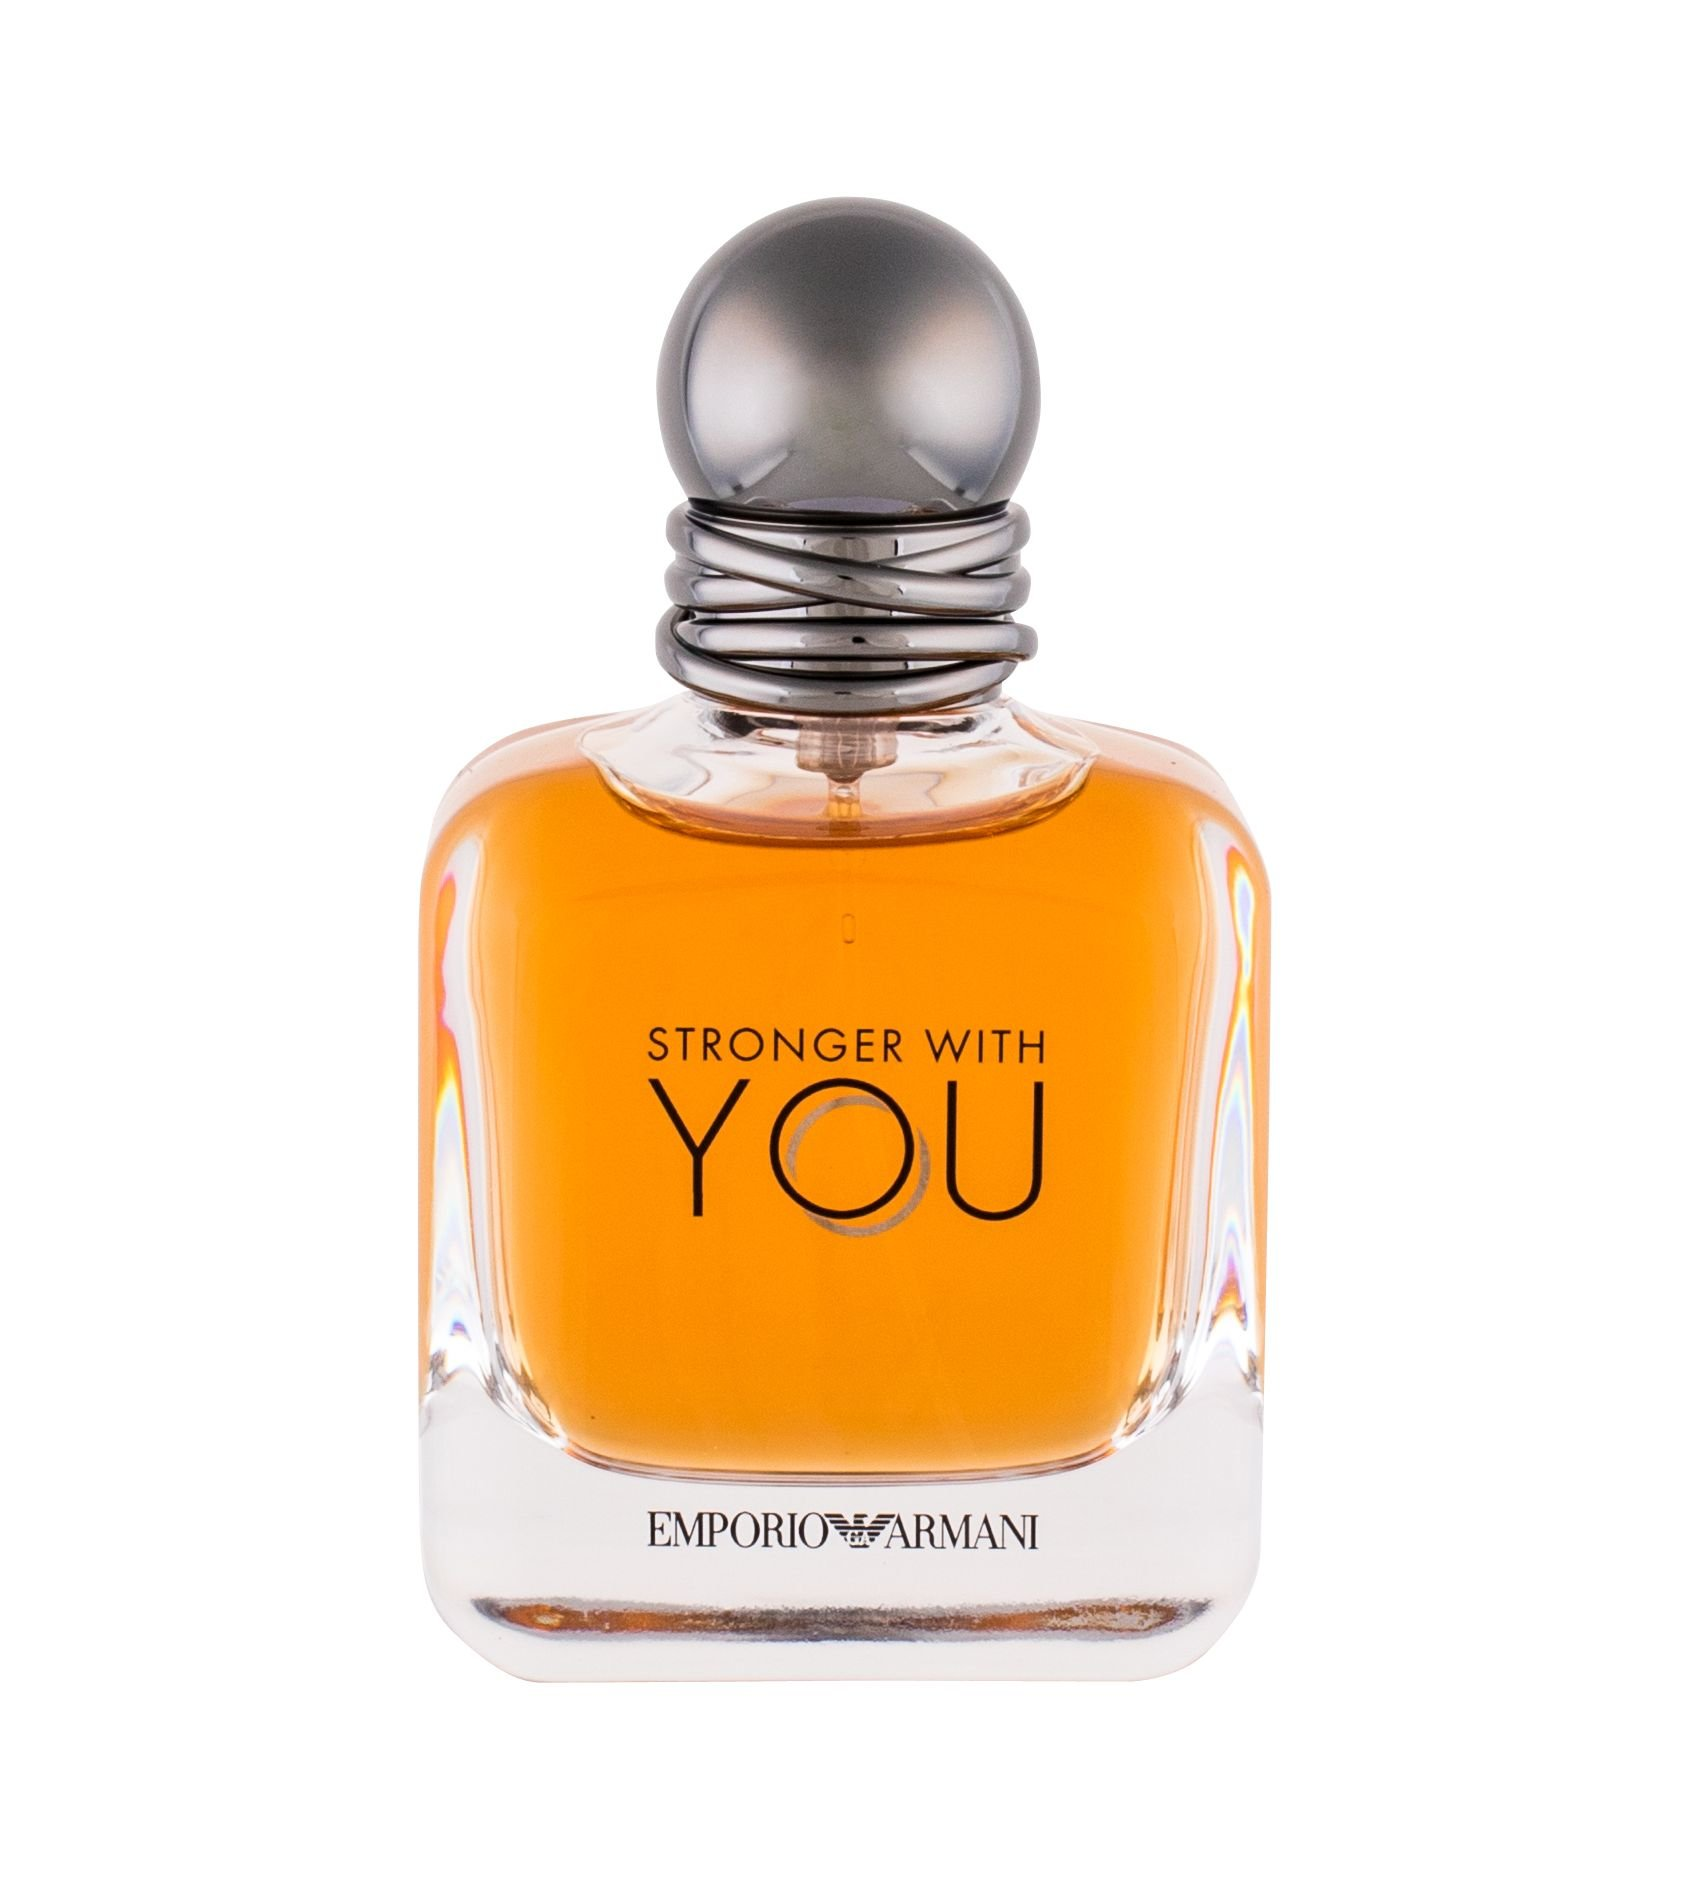 Giorgio Armani Emporio Armani Stronger With You EDT 50ml